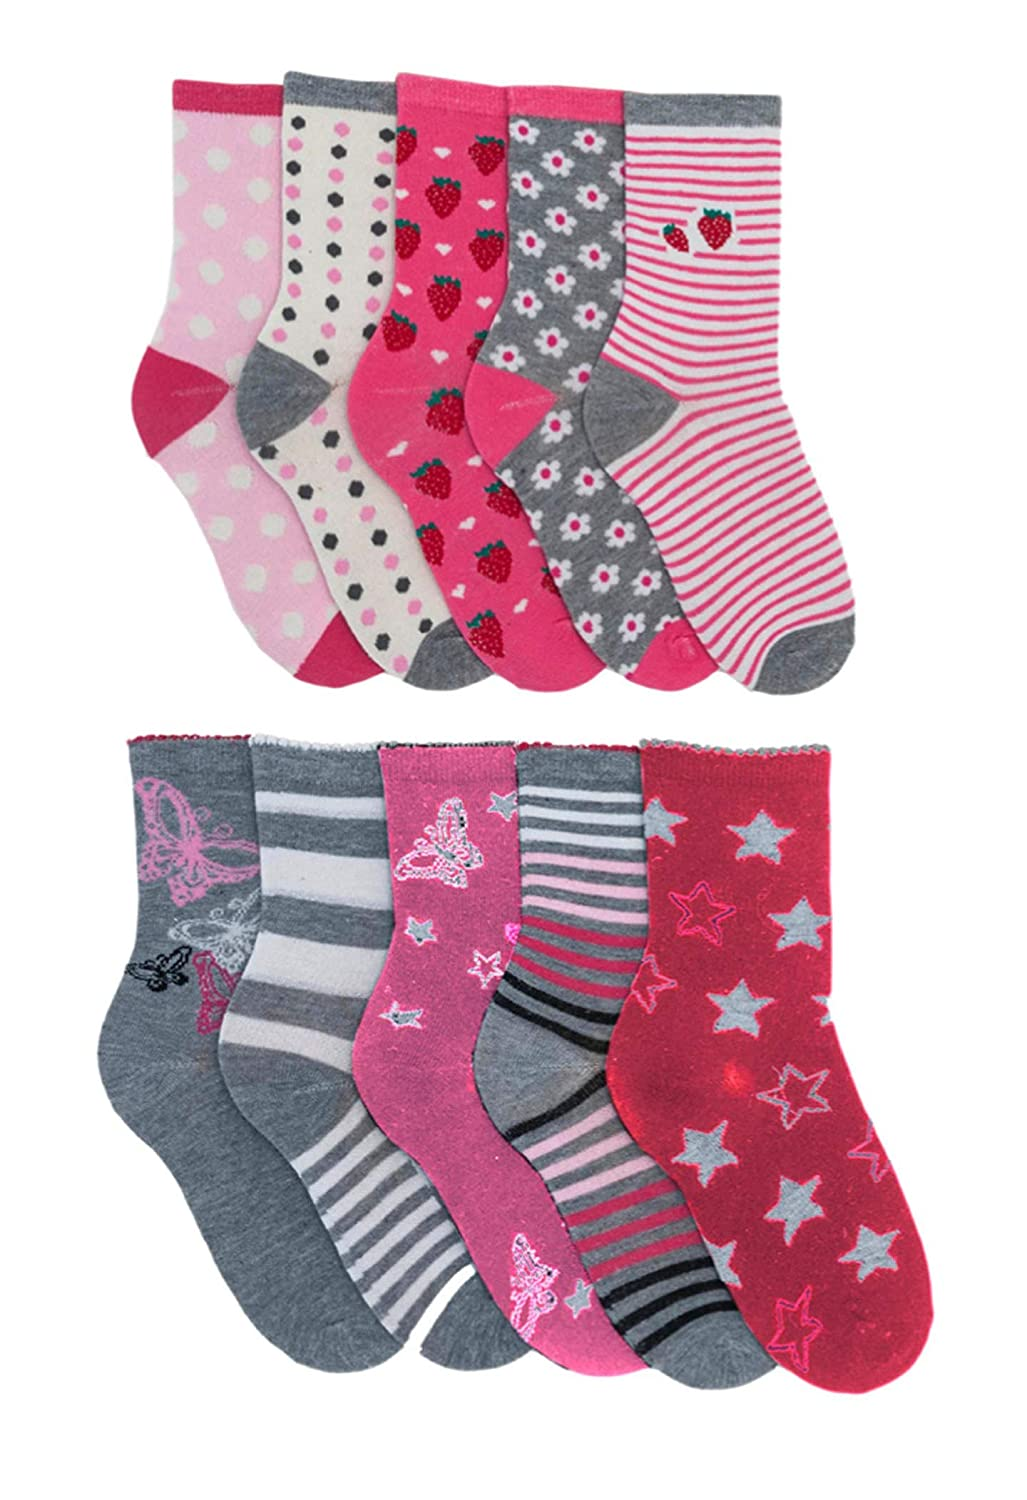 Girls 10 pack Cotton Rich Ankle Socks - Pink and Grey